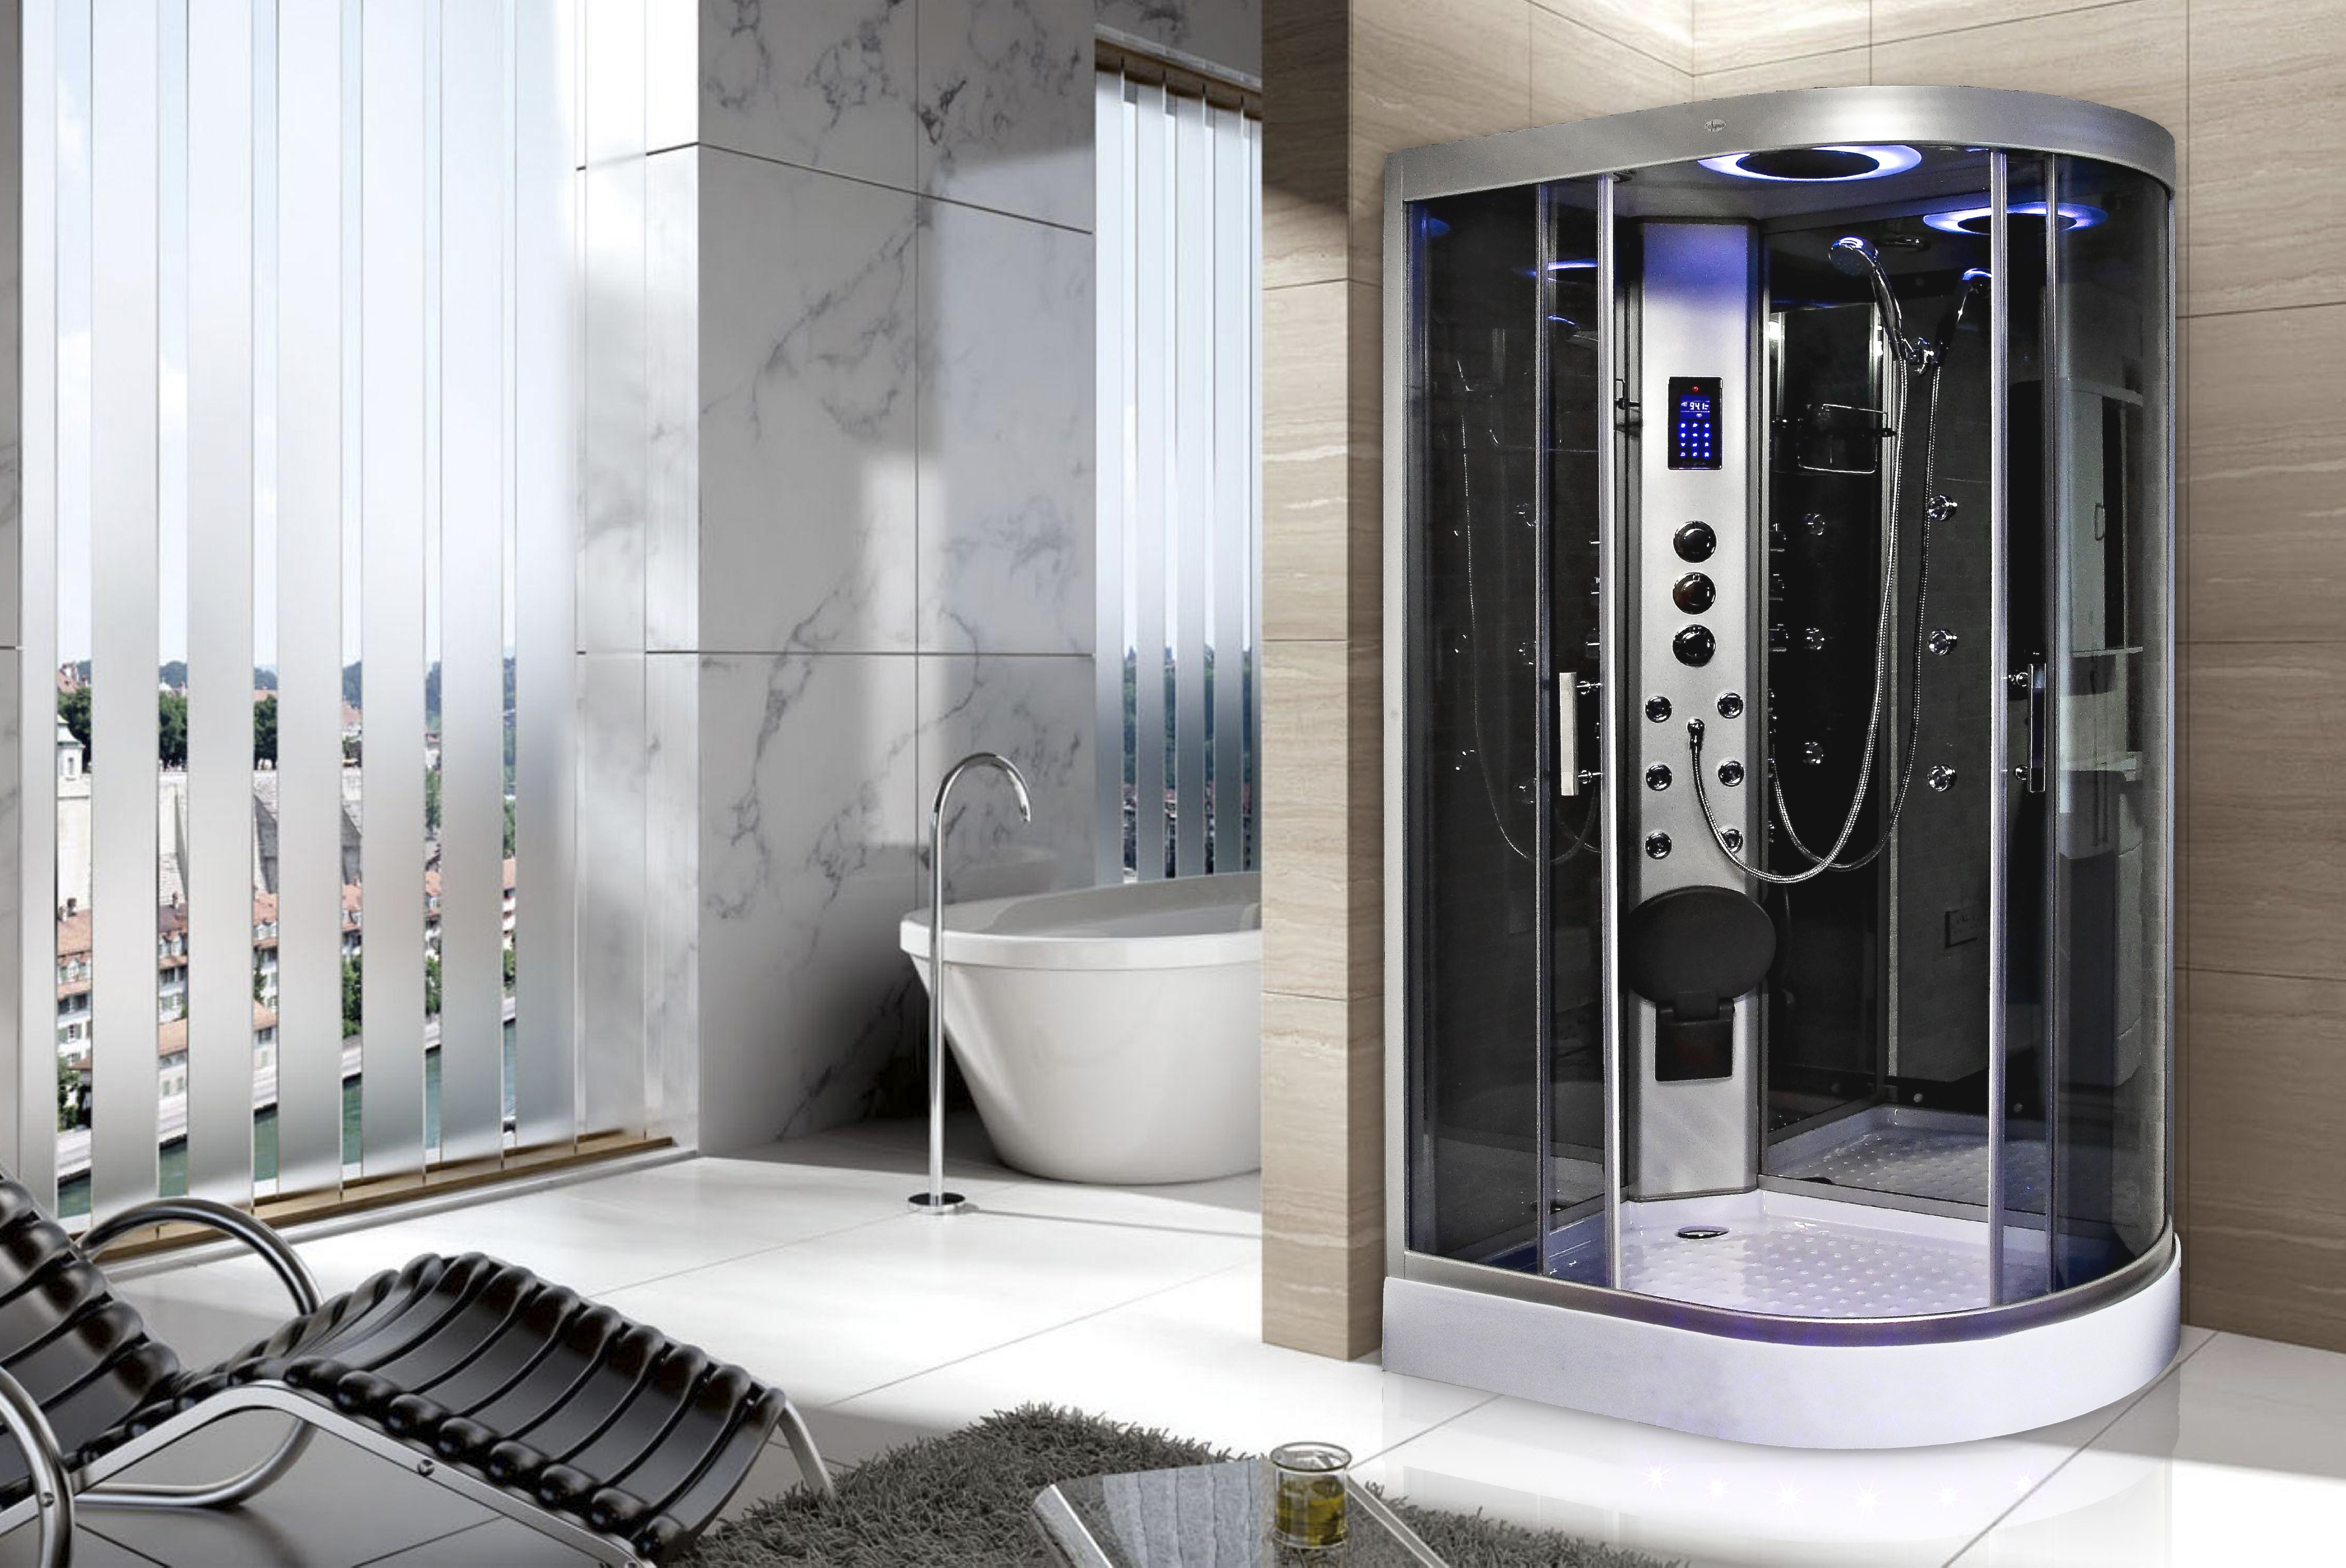 Ex Display Gt9002l We Ve Added More Ex Display Models Grab A Bargain Now Insignia Insigniaoutlet Insignia Bathroom Trends Shower Cubicles Luxury Shower